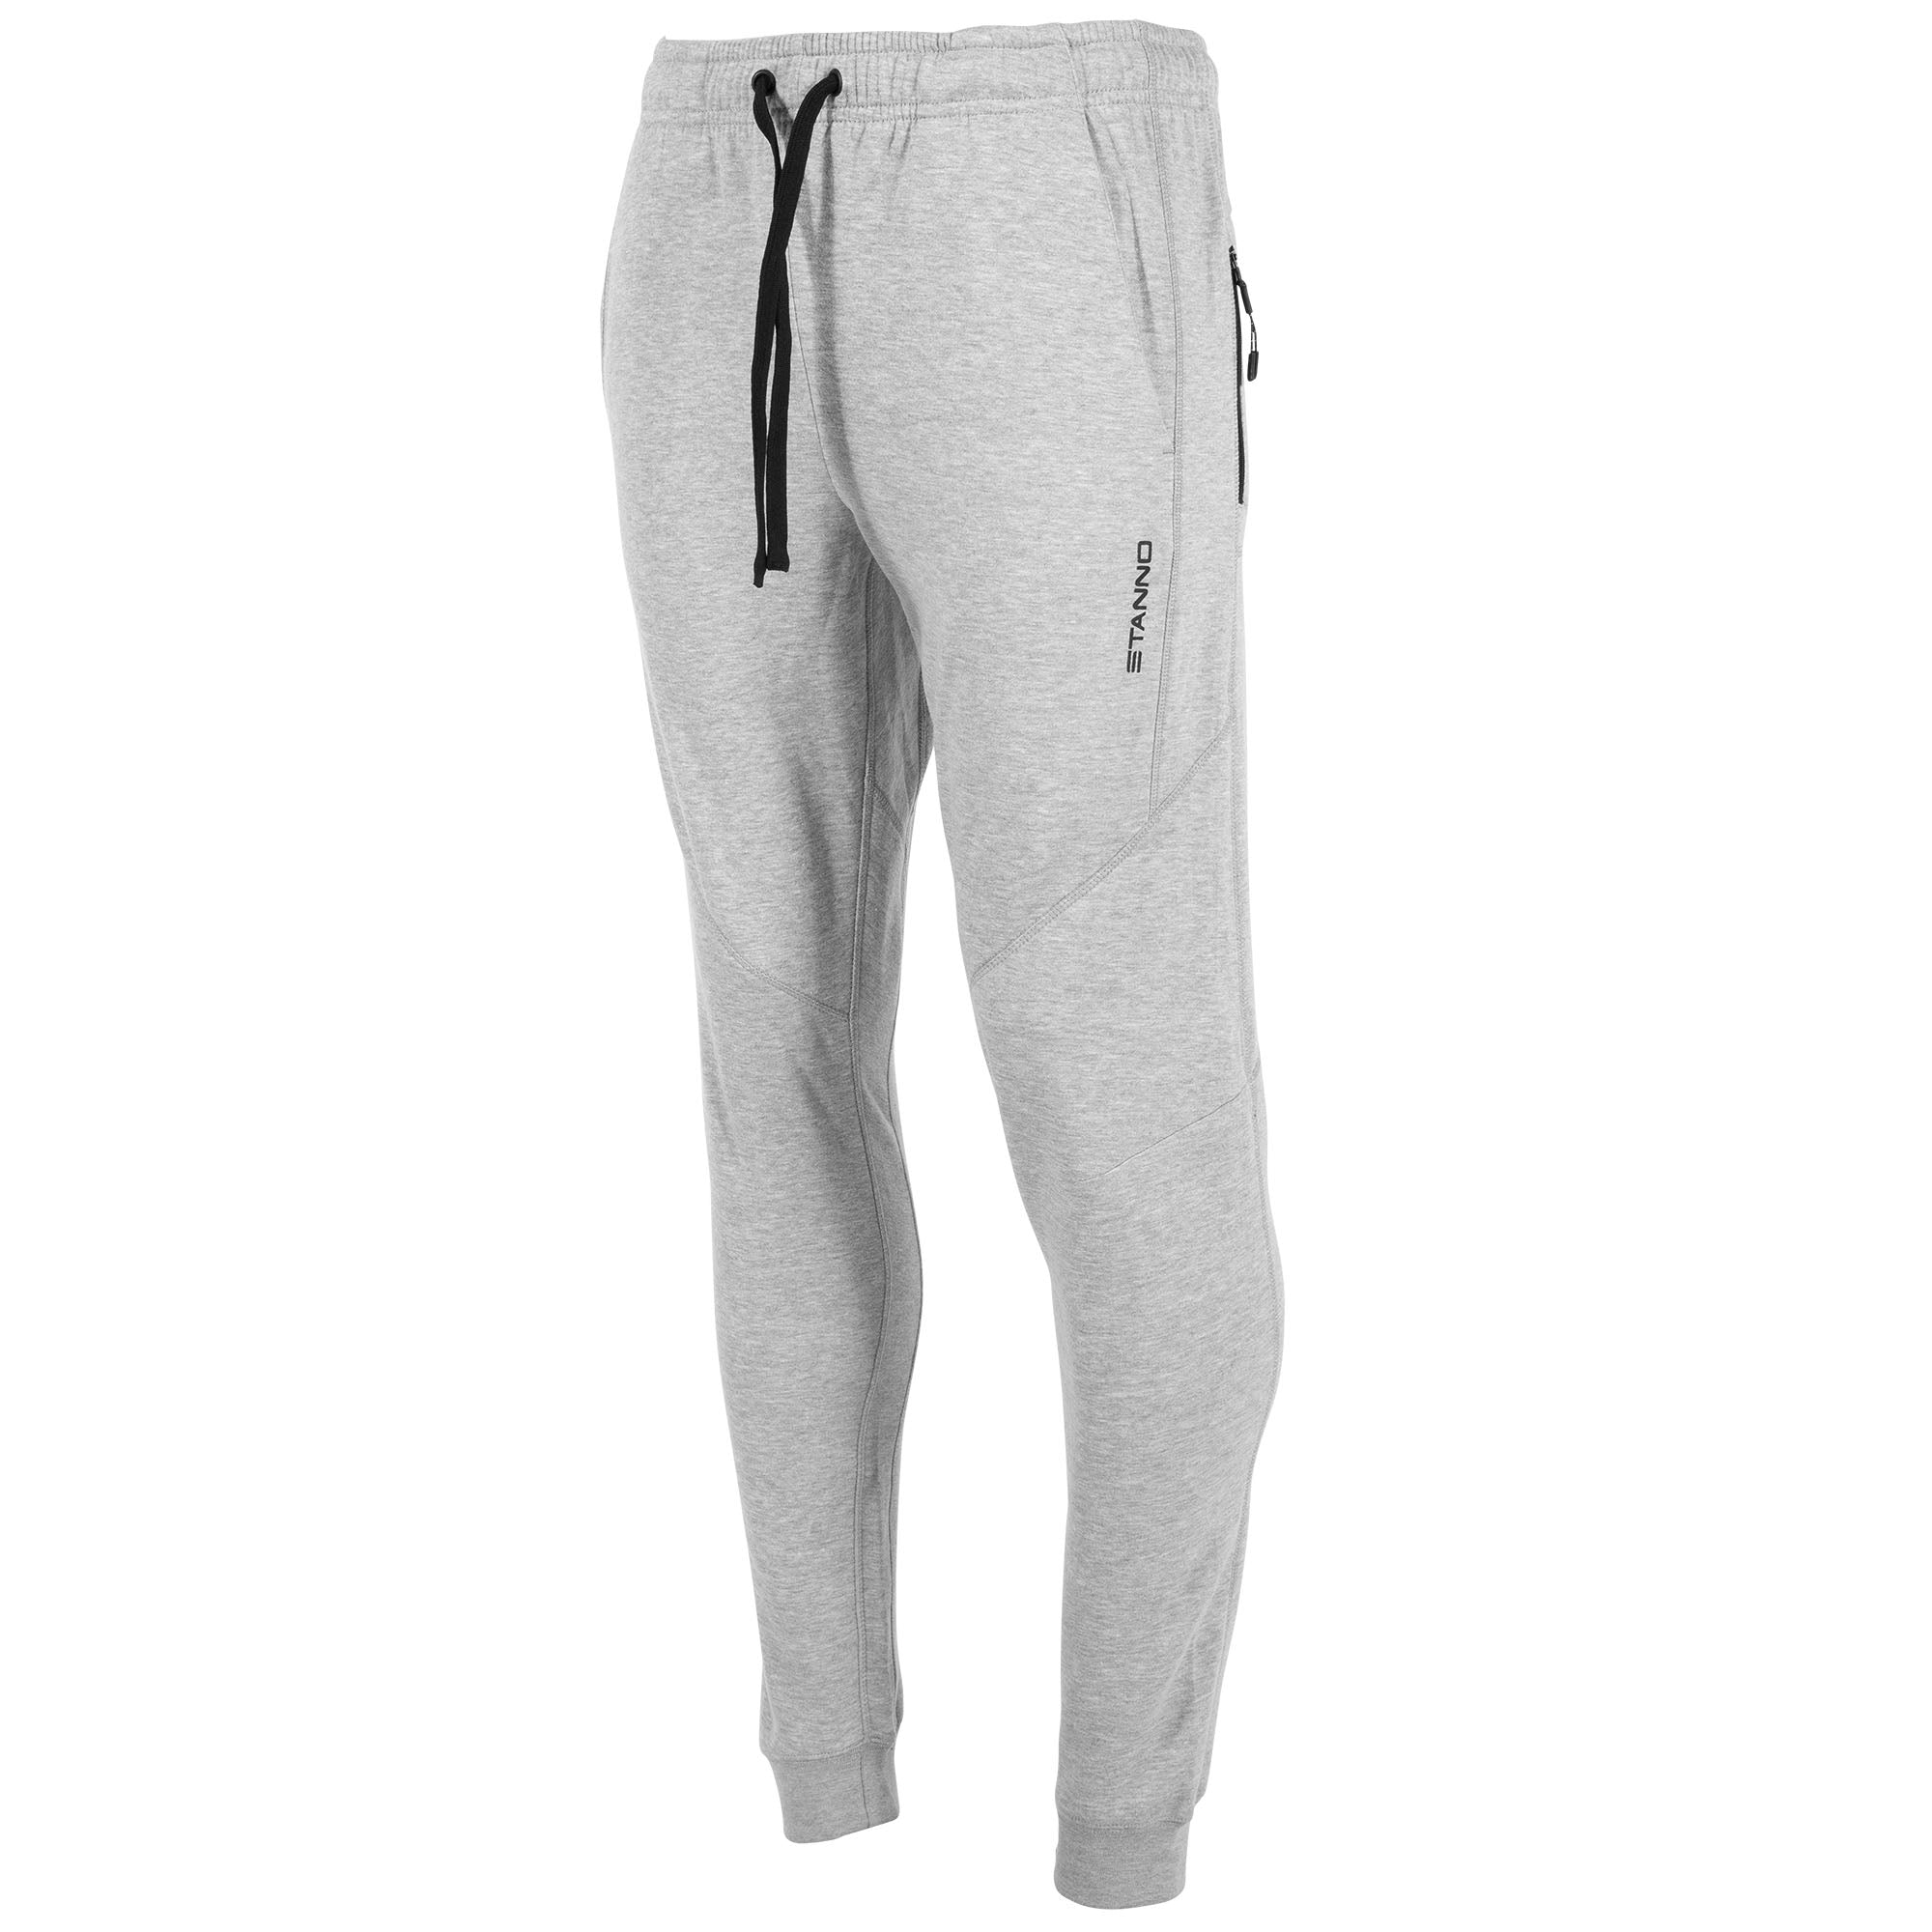 Front view of grey Stanno Ease Sweat Pants with 2 side pockets and black drawstring cord on waistband.